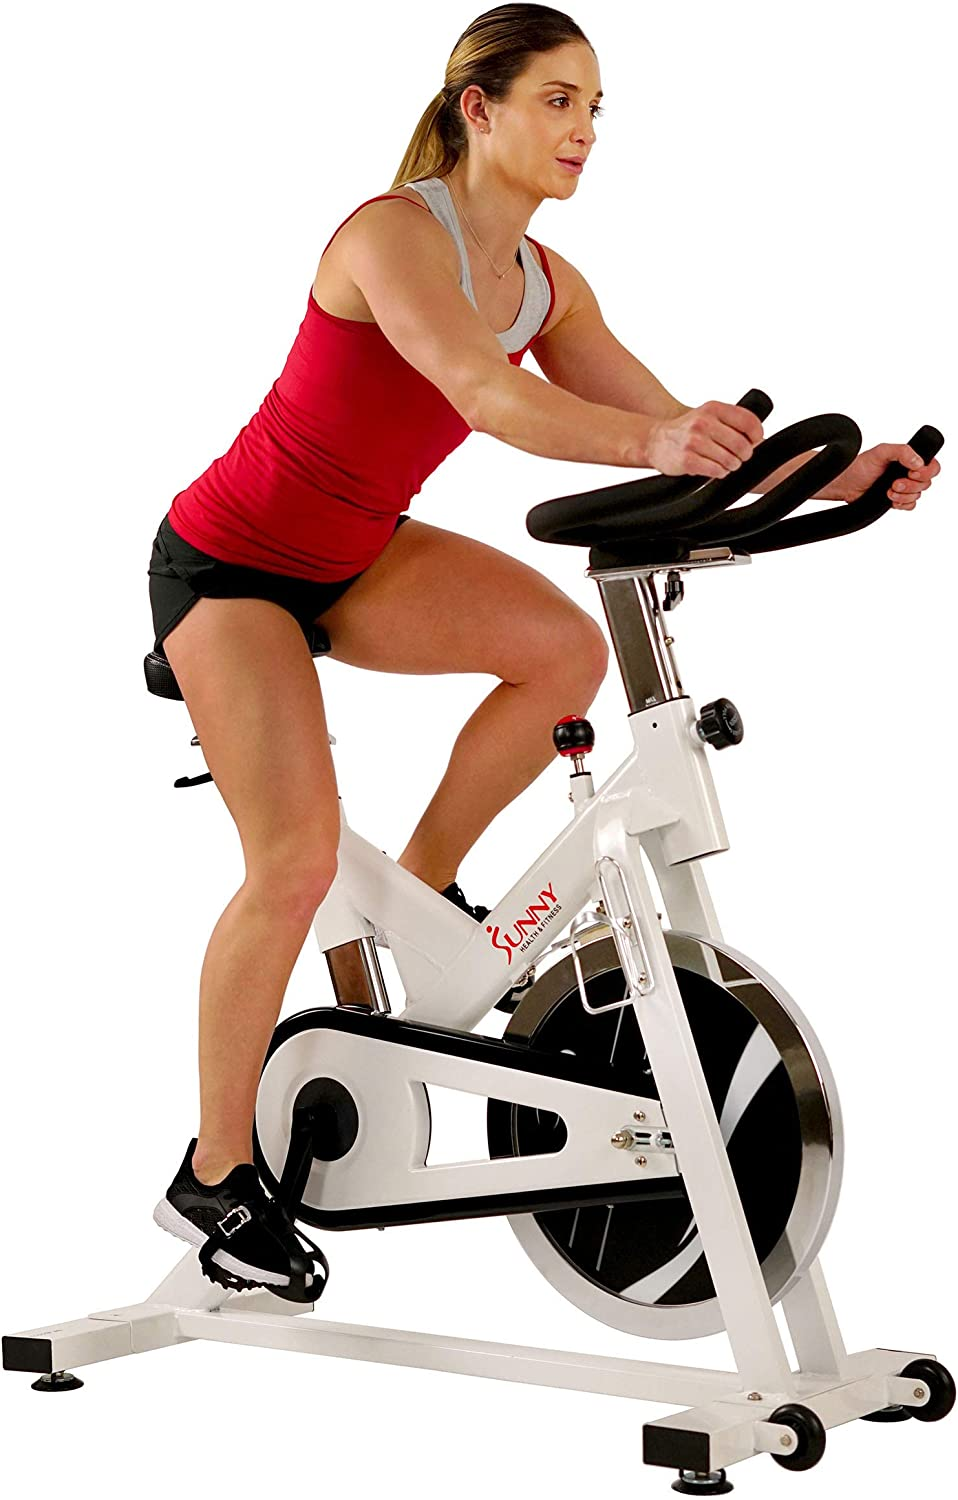 Sunny Health Fitness Indoor Exercise Stationary Cycle Bike with 44 LB Inertia Flywheel, Smooth Chain Drive, Felt Resistance, 265 Max Weight – SF-B1110 S